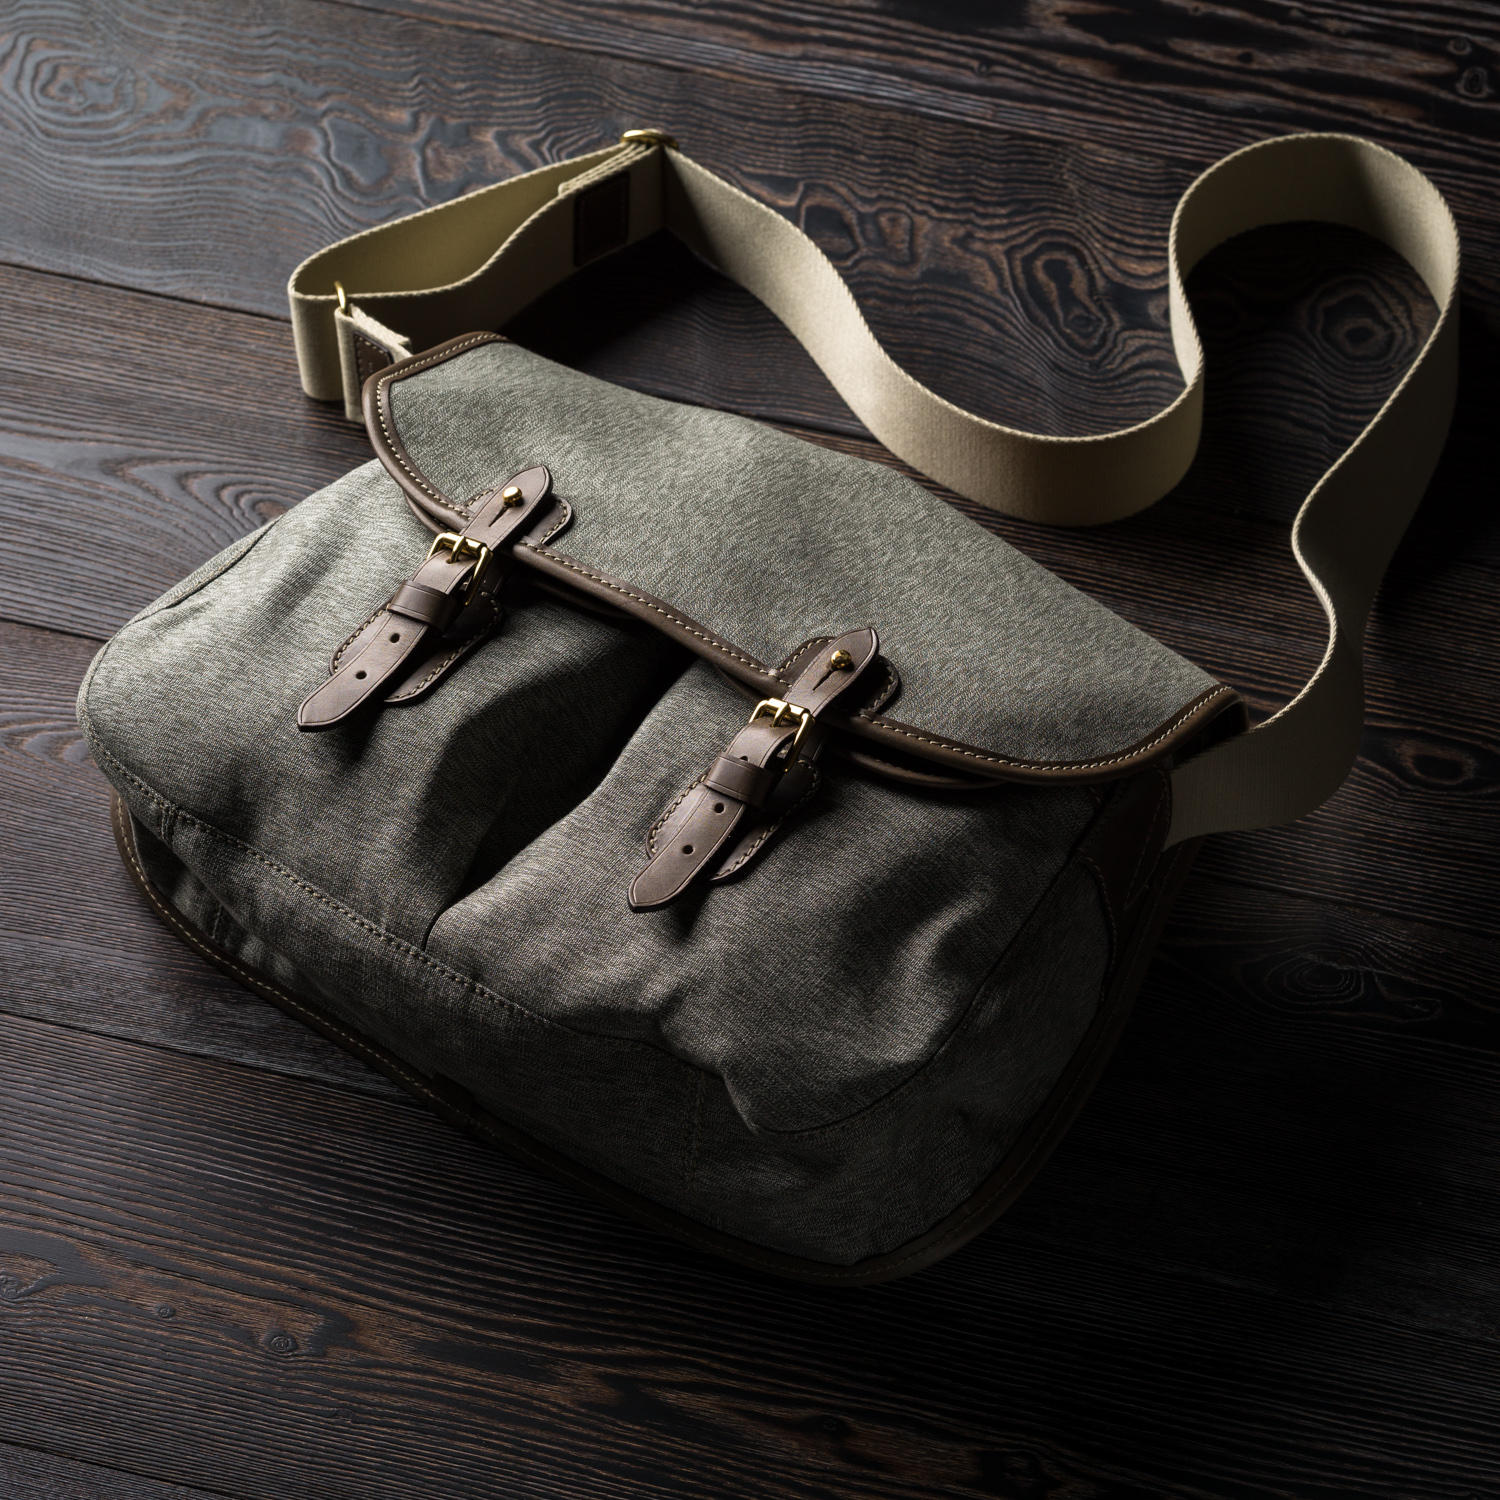 Westley Richards Bishop Bag Canvas & Leather Swiss Army Cammo